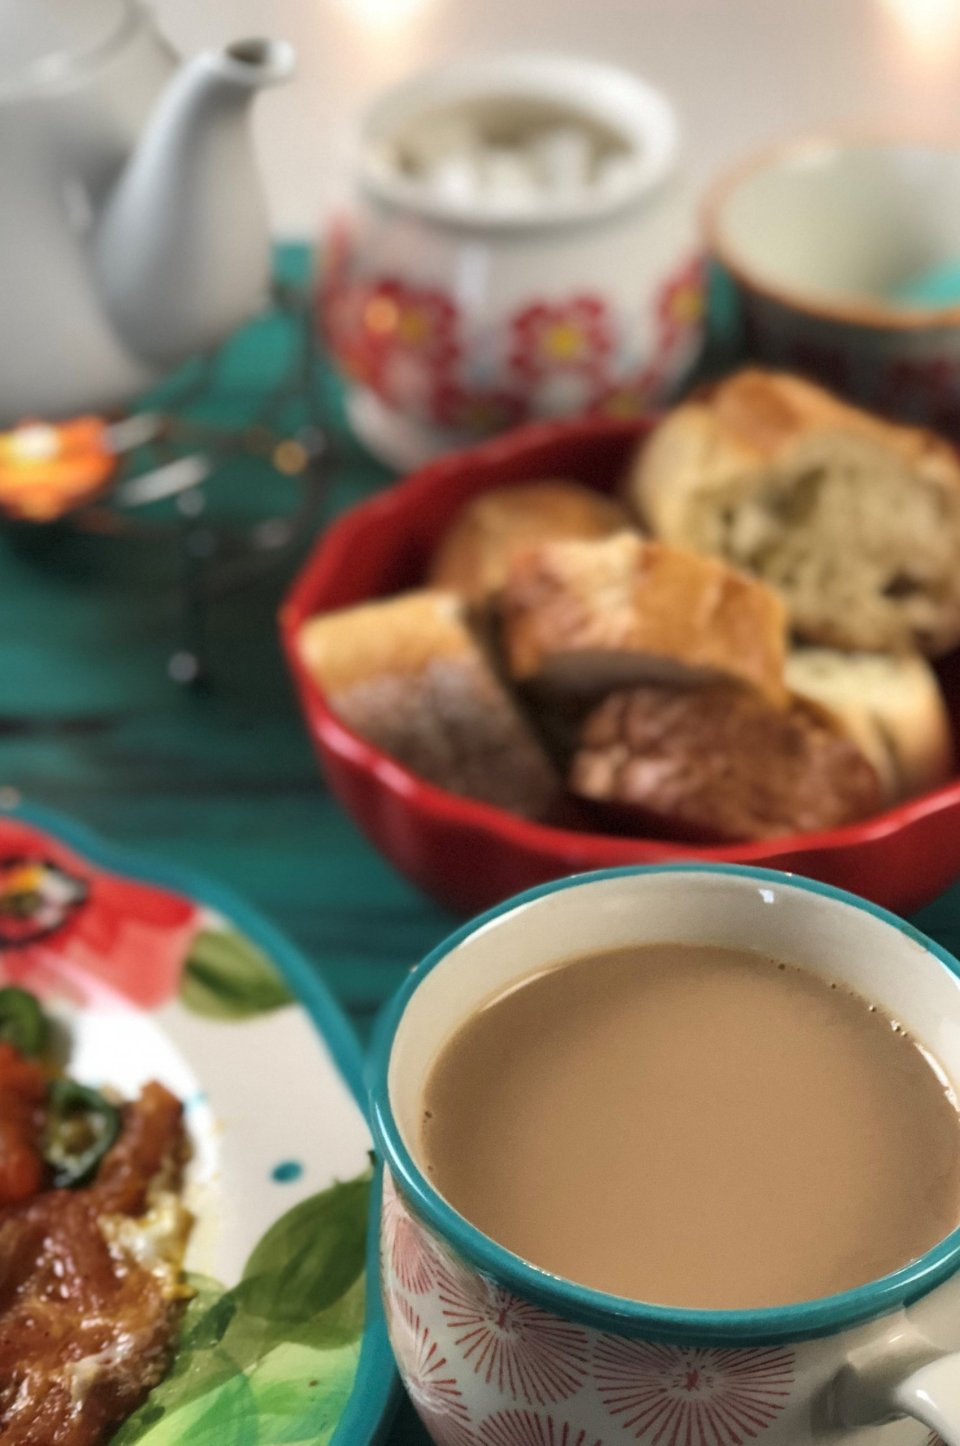 Sheer Chai Afghan (Cardamom Tea with milk)